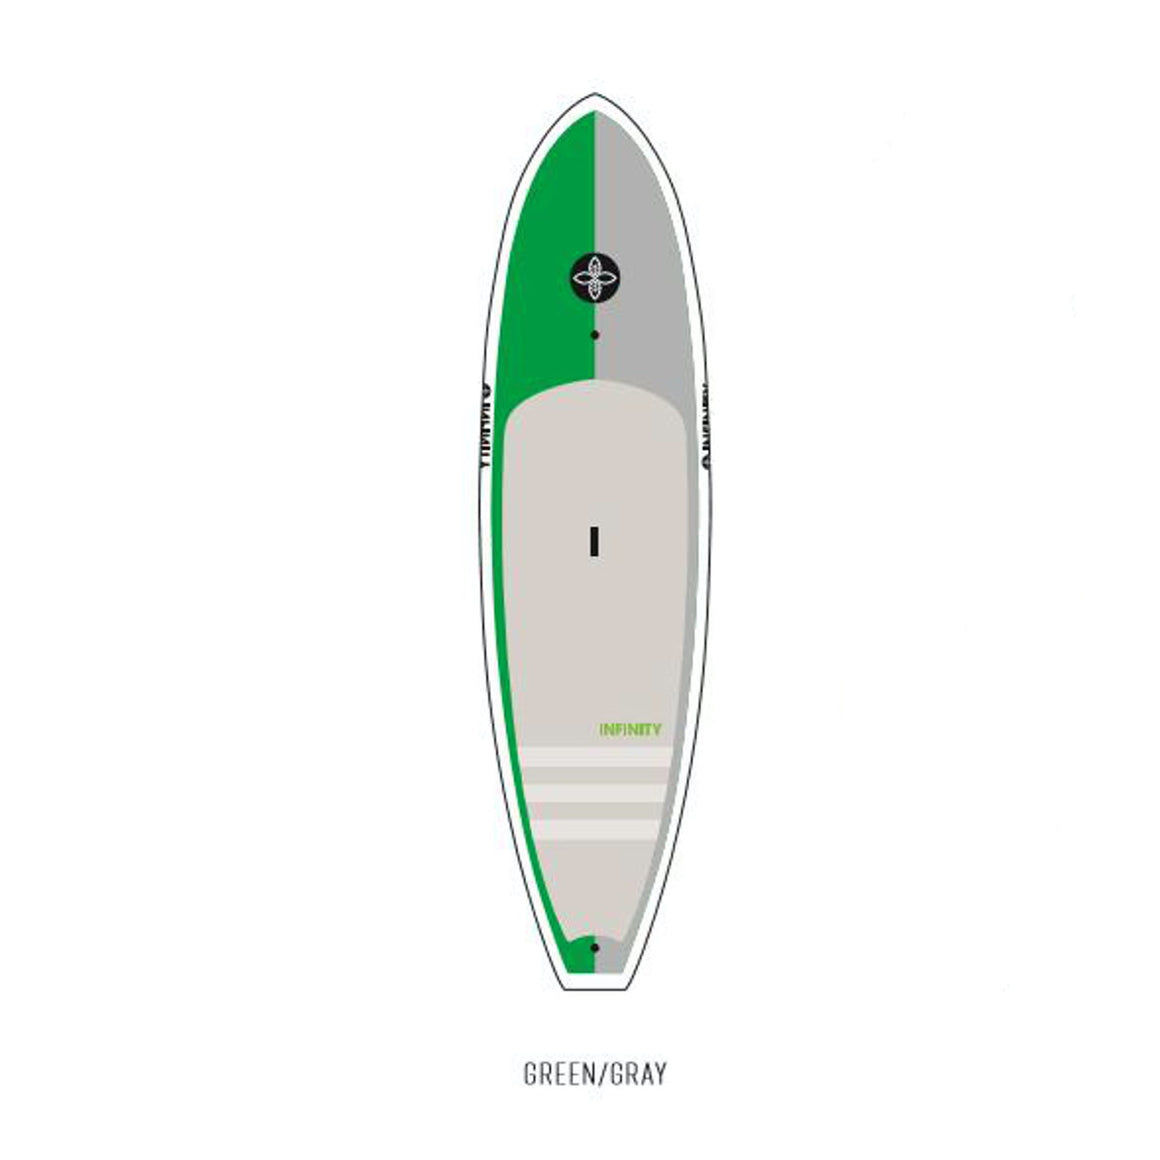 Infinity - 10'8 All Arround Wide Aquatic - Green